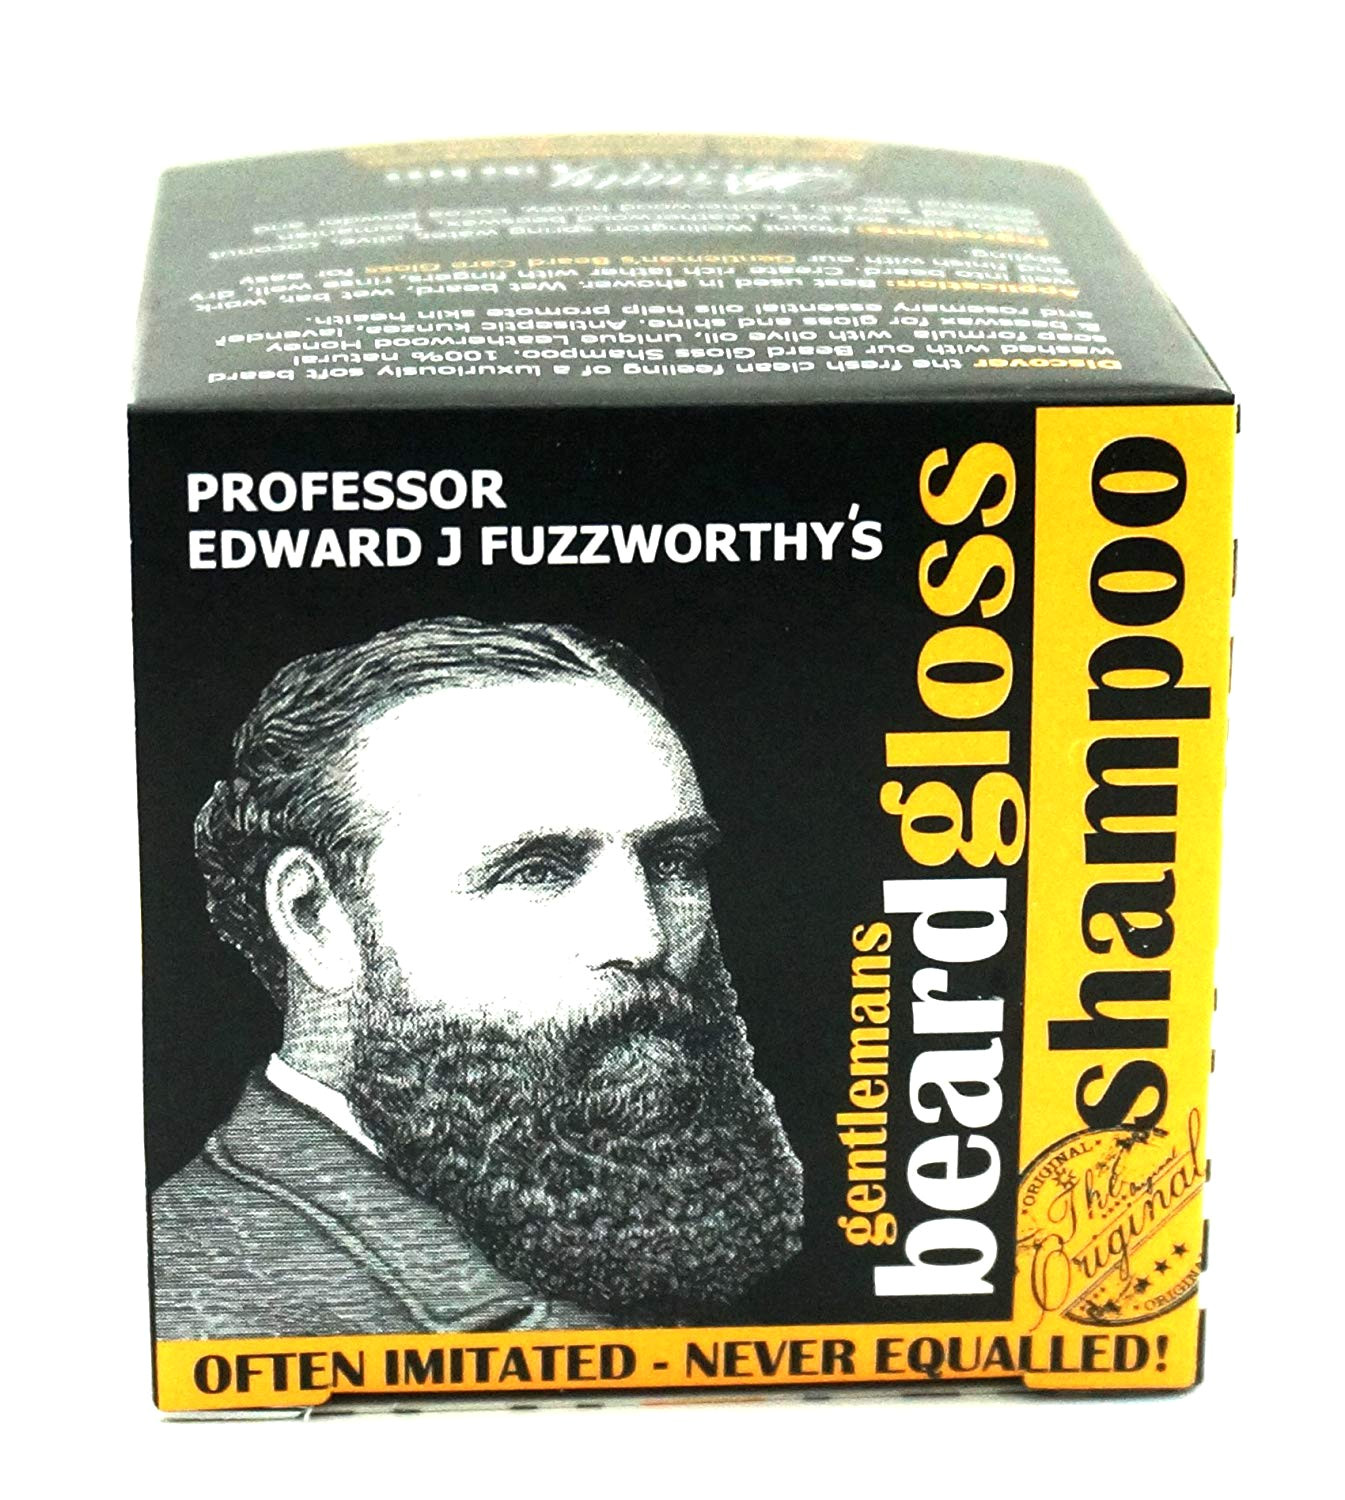 amazon com professor fuzzworthy s beard shampoo with all natural oils from tasmania australia 125gm beauty